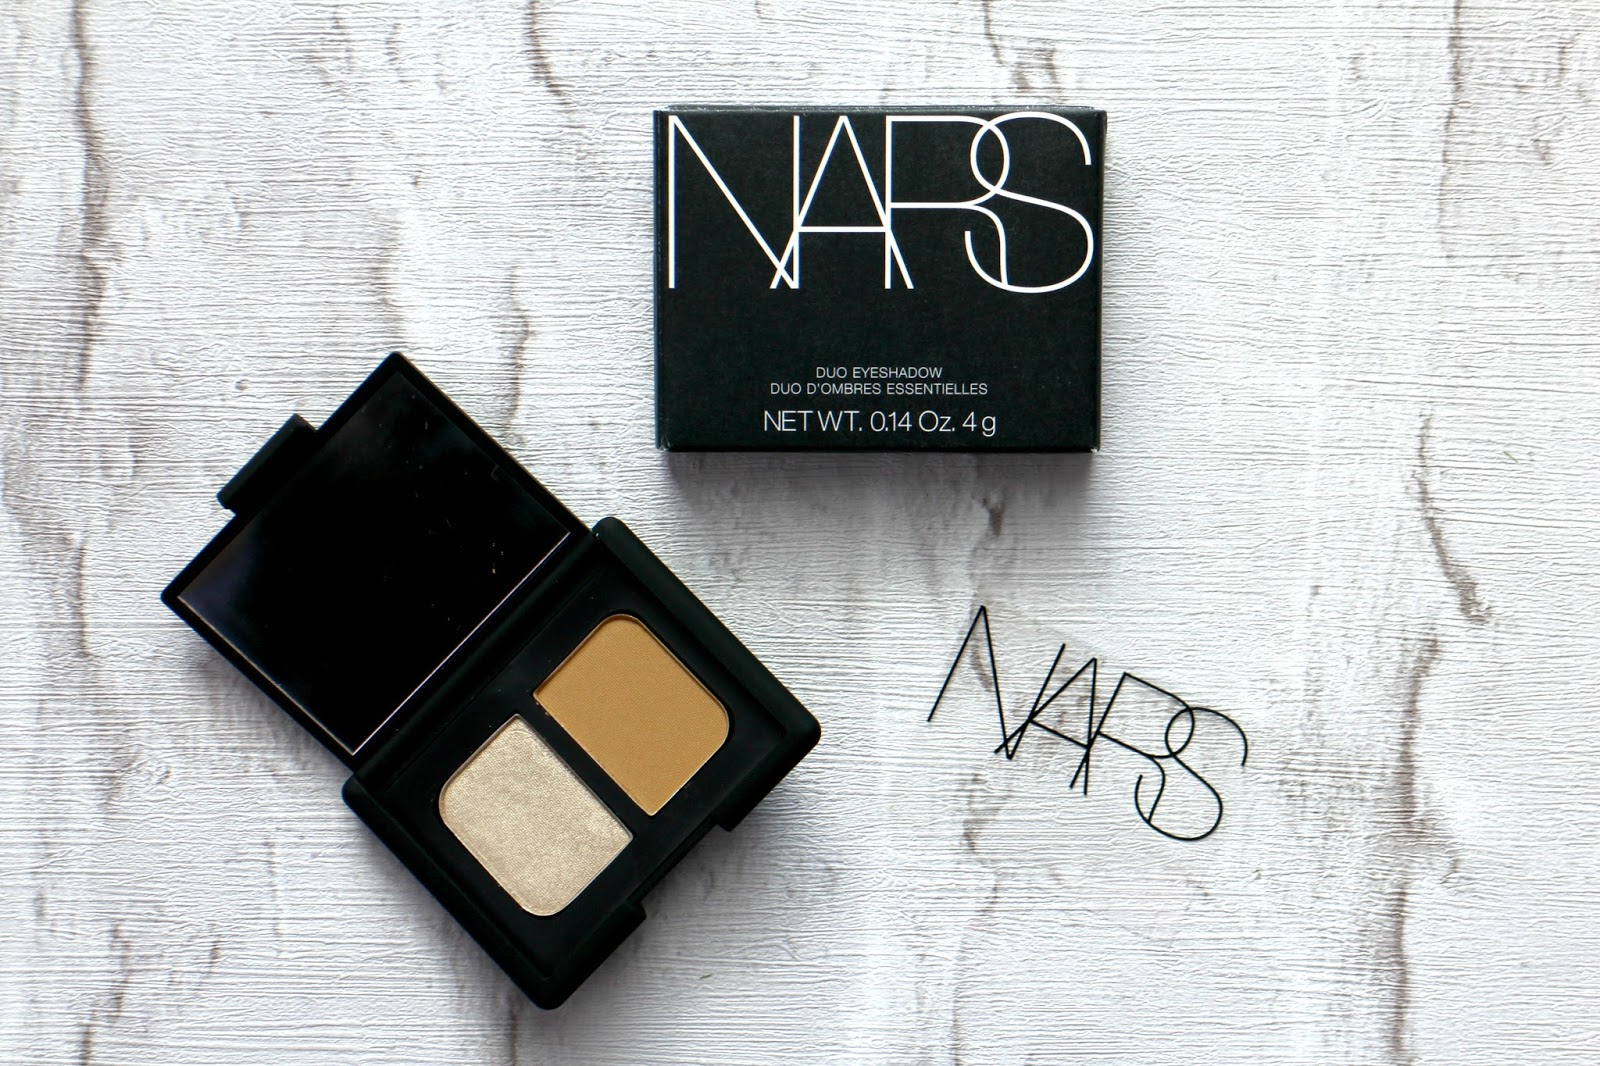 NARS Eyeshadow Palette Indian Summer Review Beauty Blog